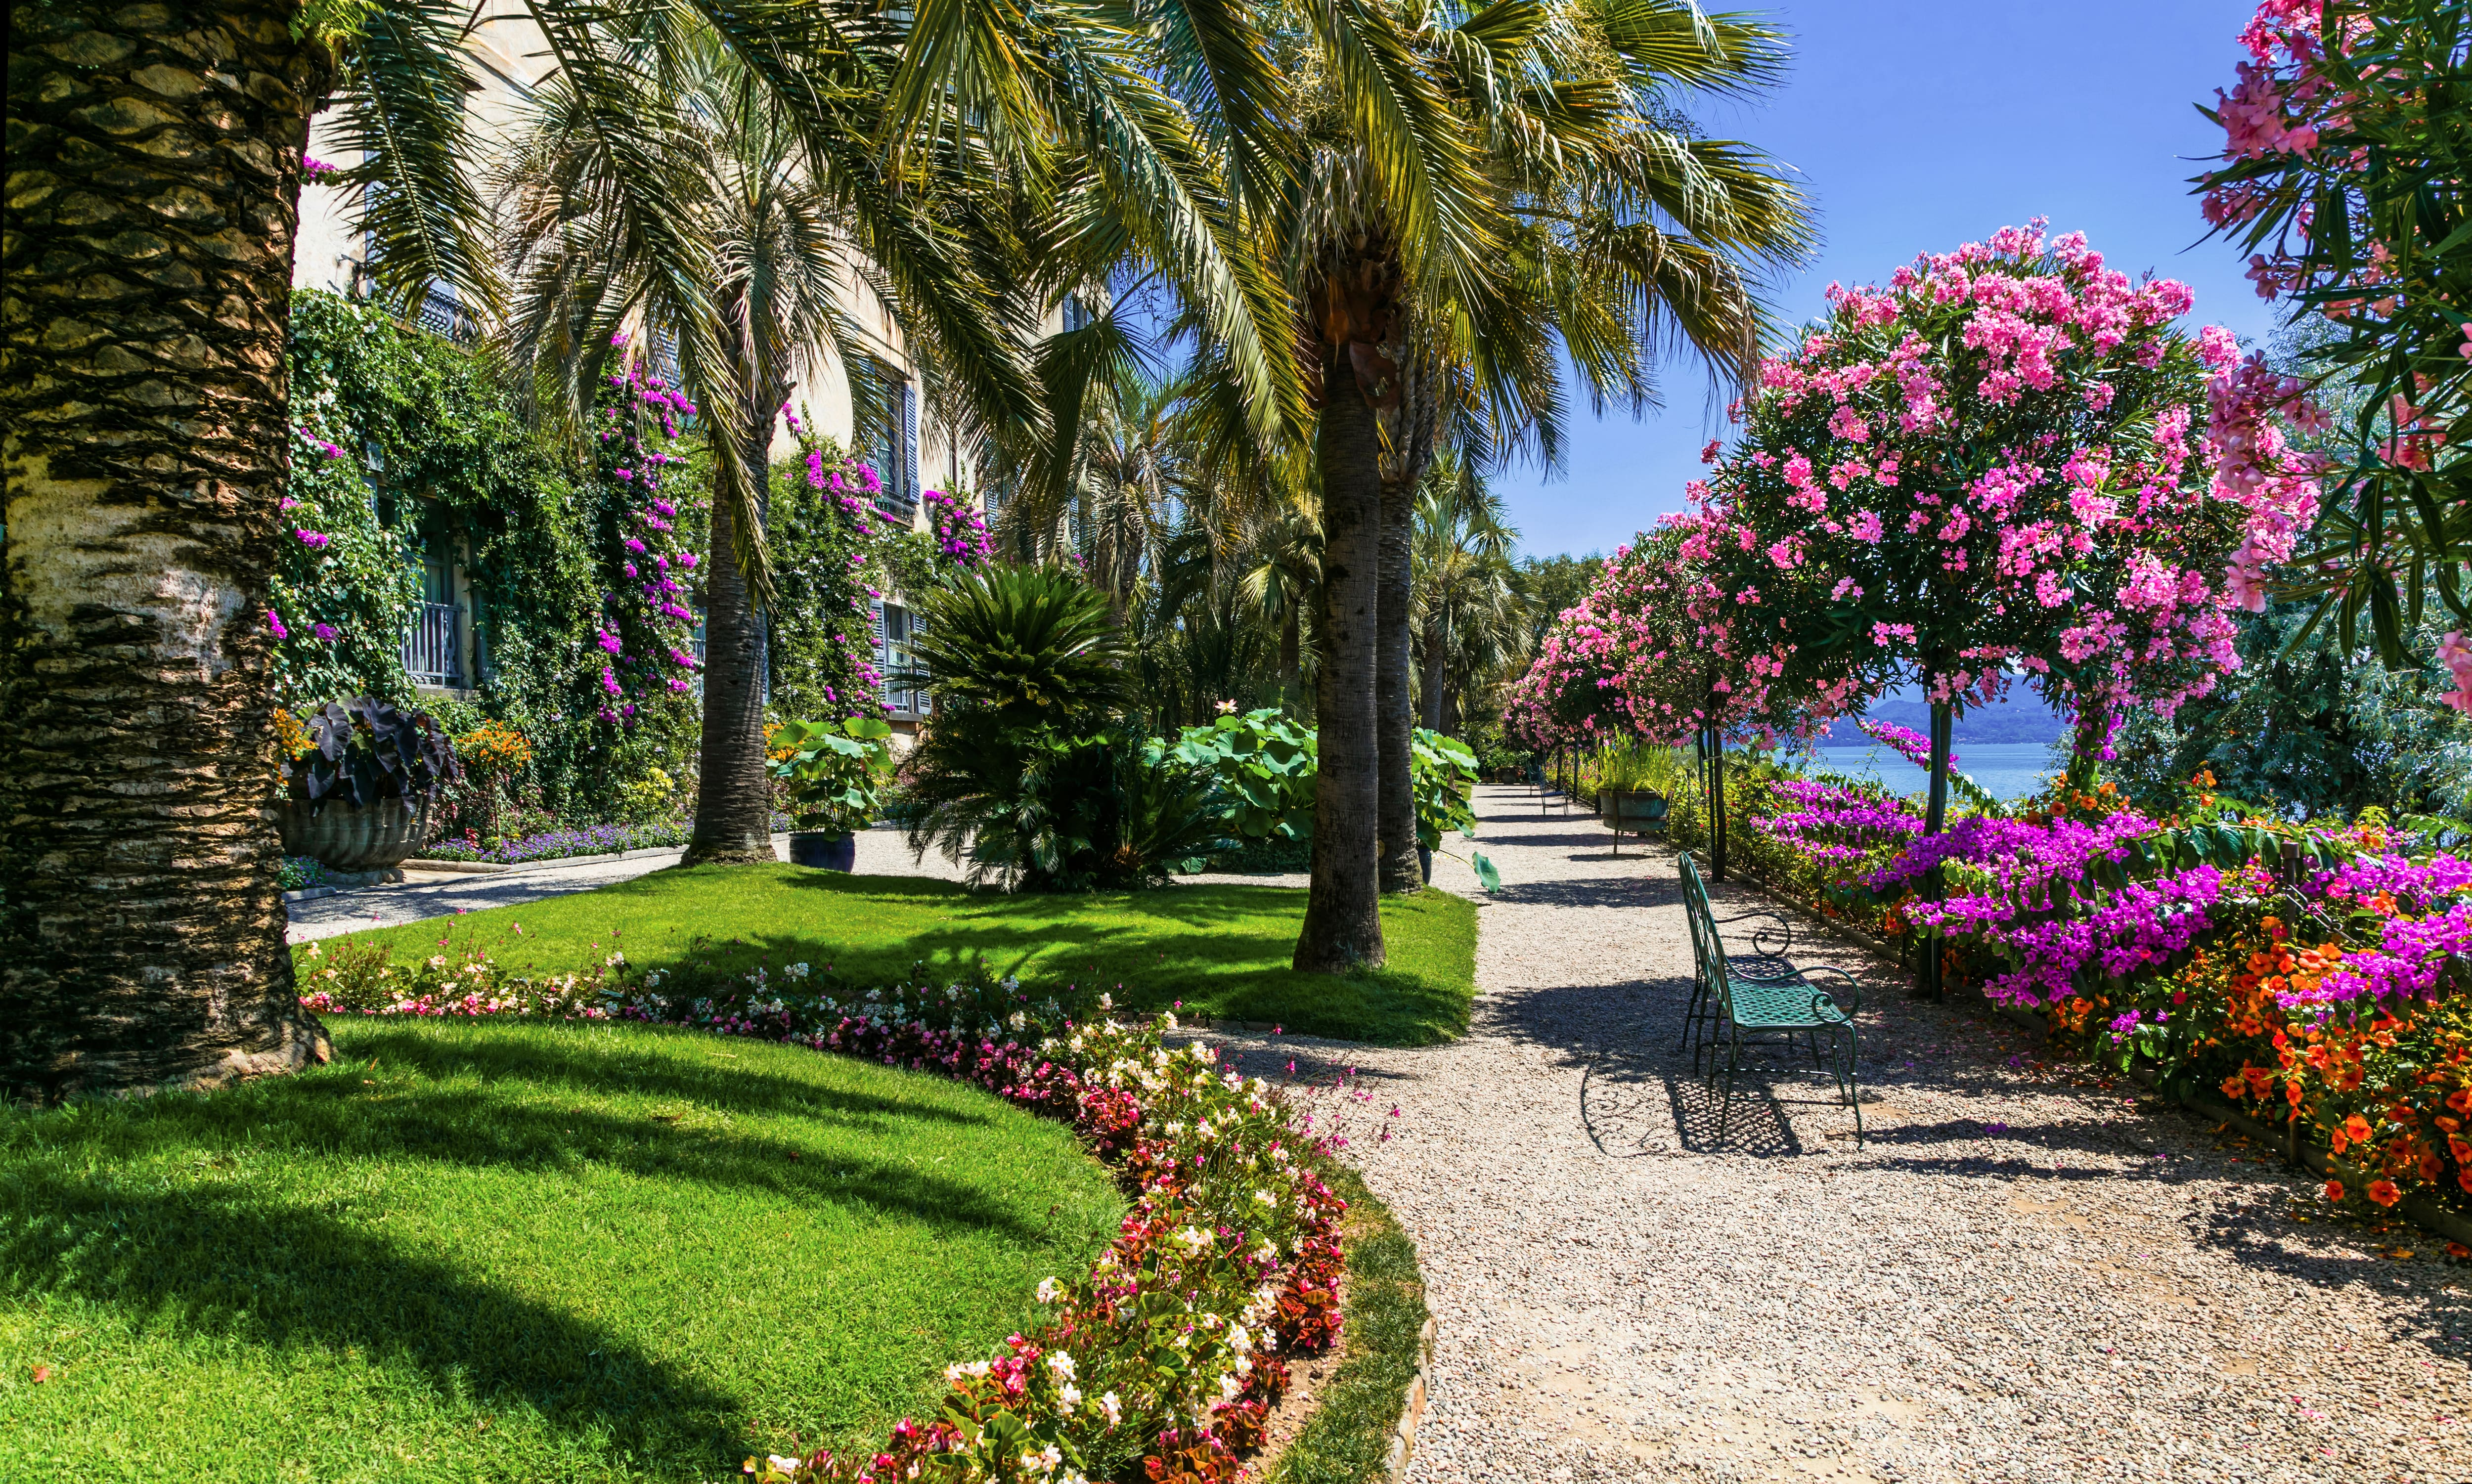 Gardens on Isola Madre